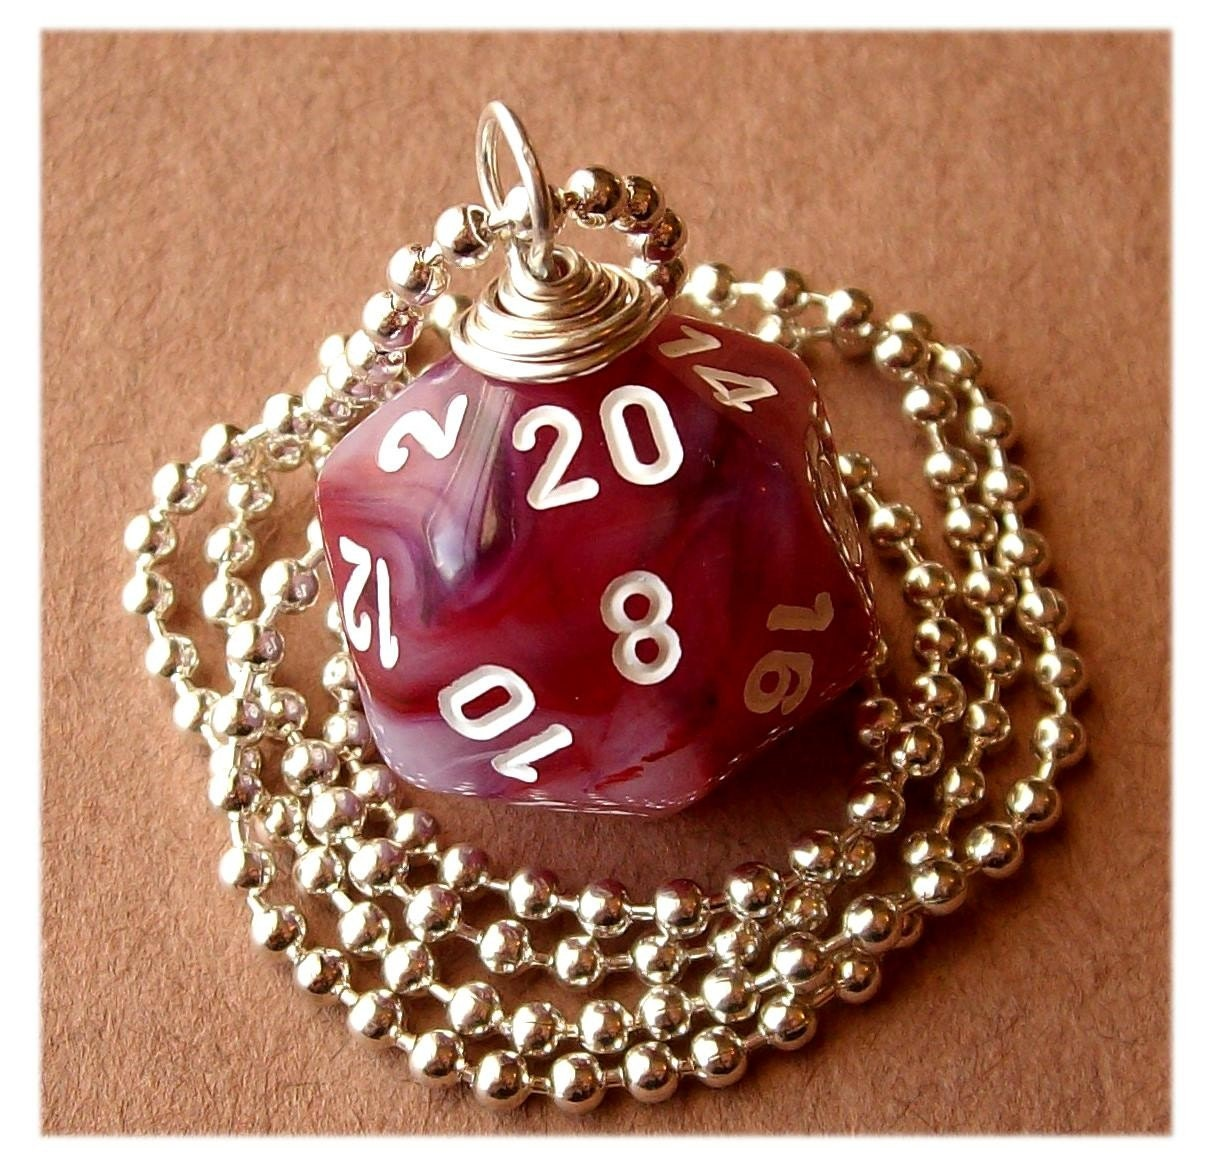 geekery, dice, die, geek, game, dnd, jewelry, necklace, pendant, accessory, dungeons dragons, pawandclawdesigns, red, pink